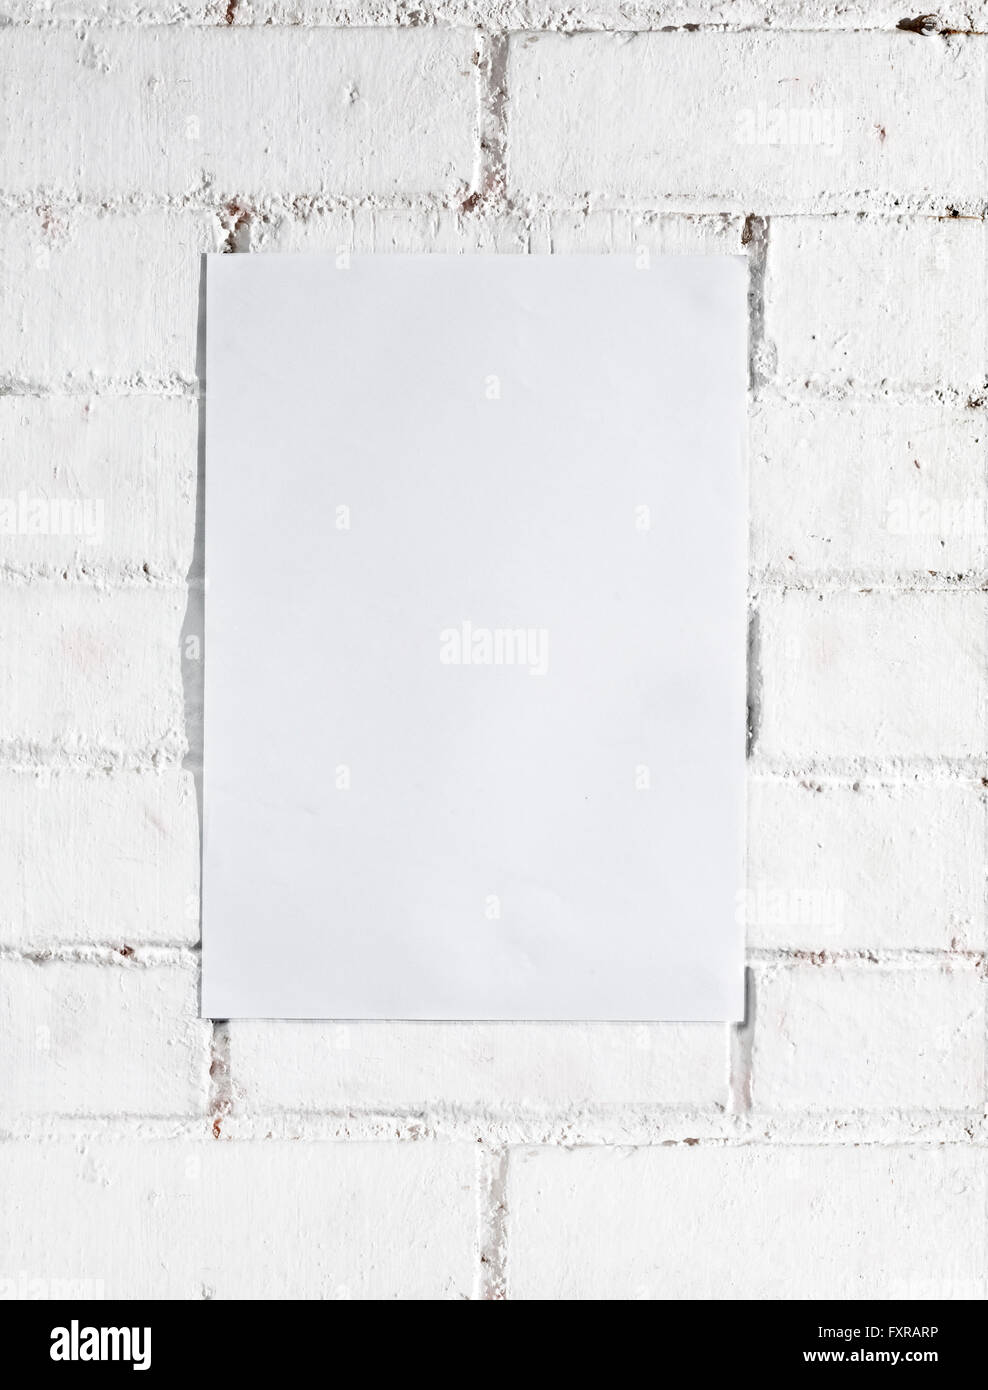 white brick wall with template poster (It serves as template) background - Stock Image